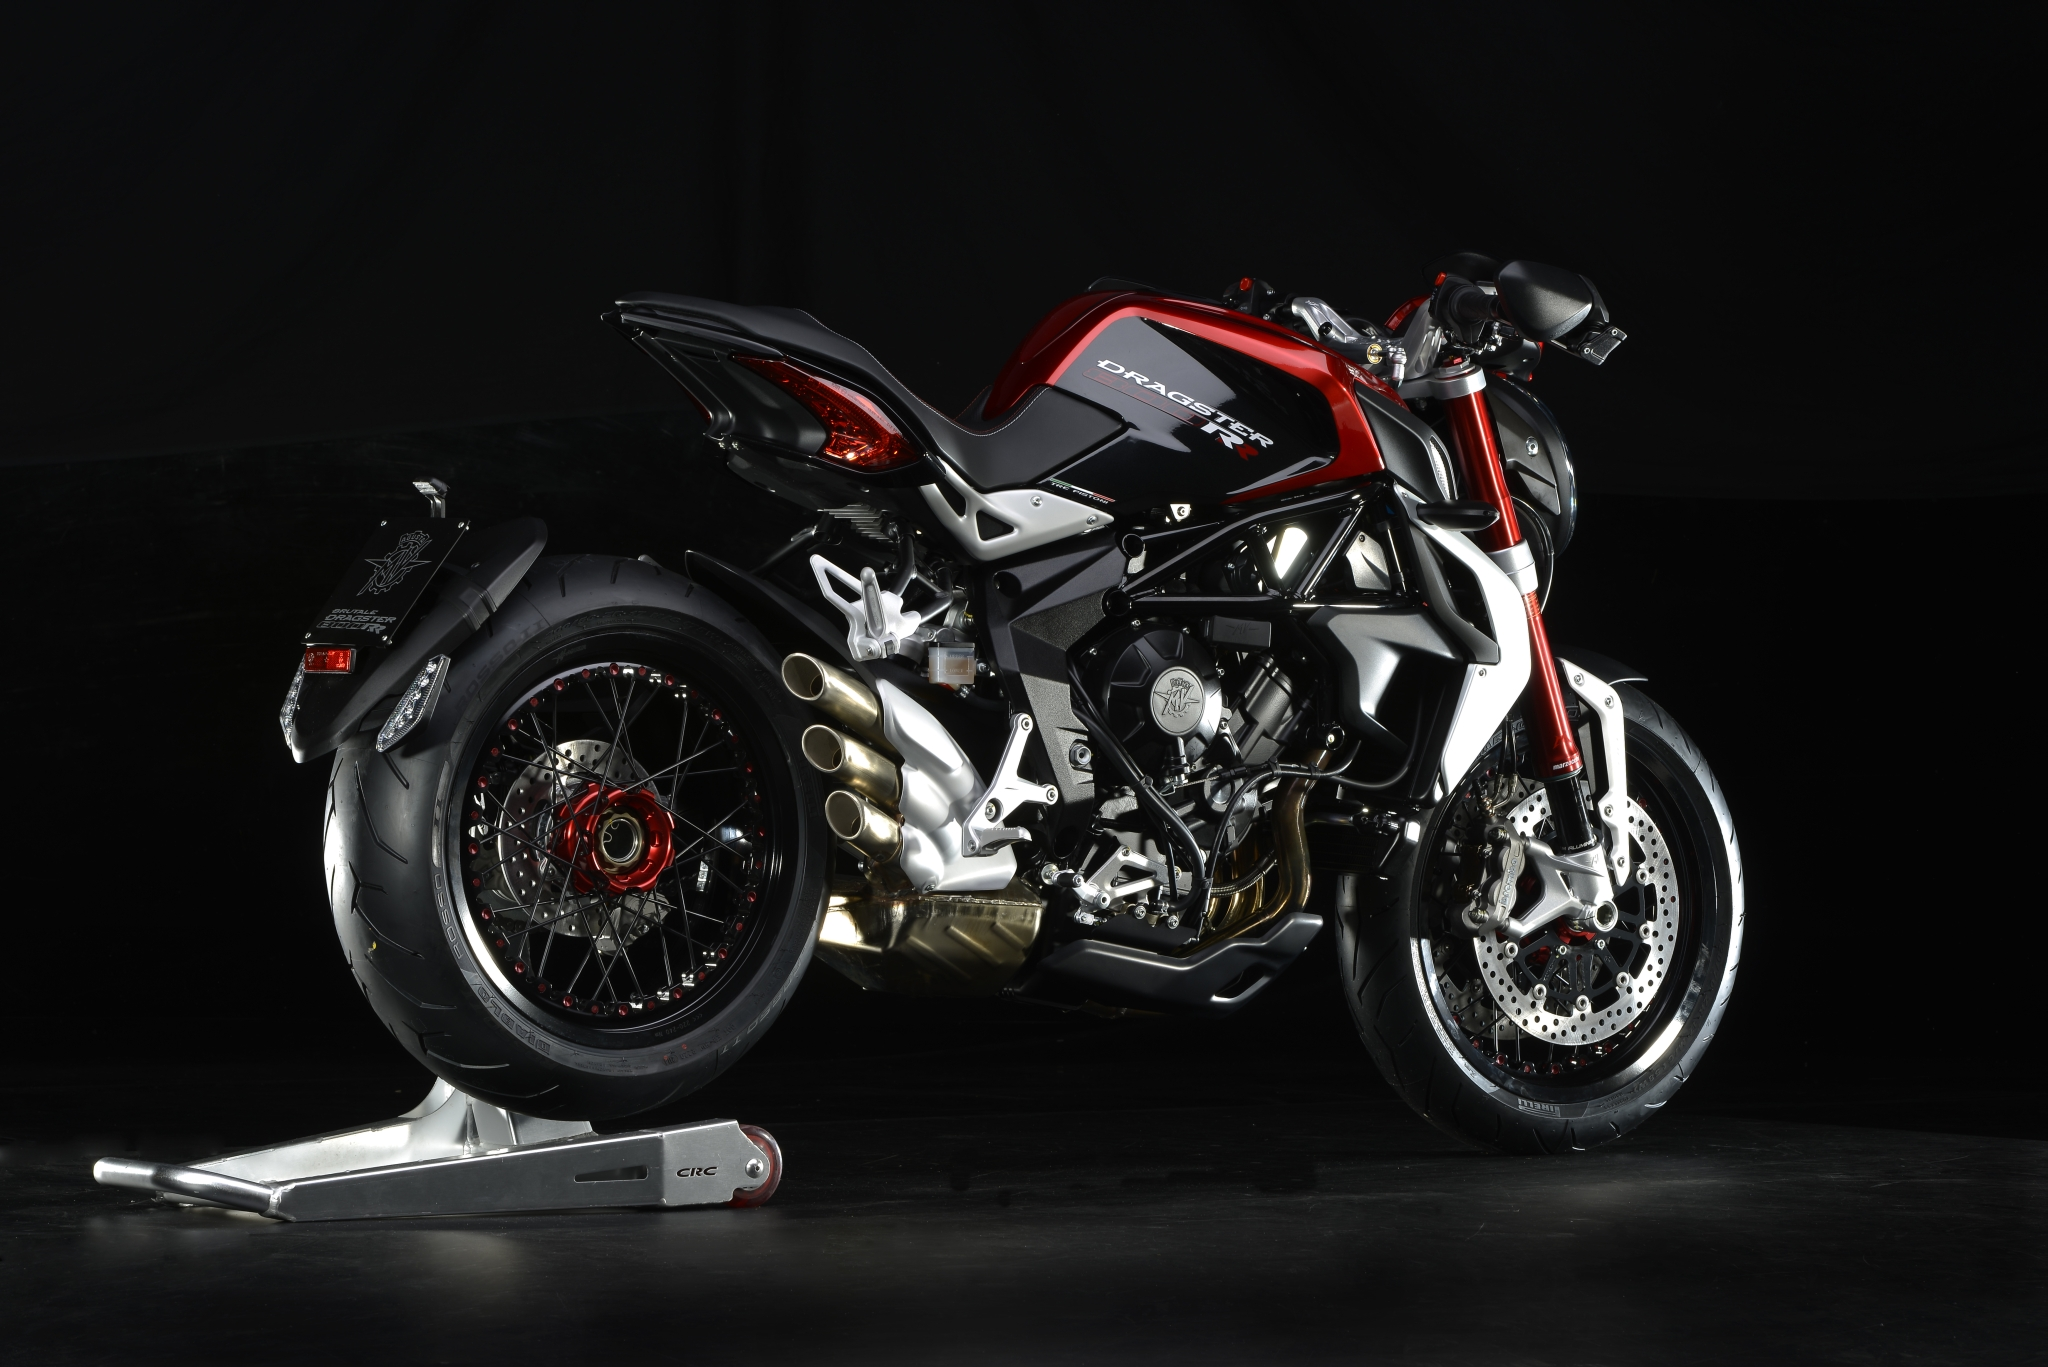 2015 mv agusta brutale dragster 800 rr the 140 hp naked beauty autoevolution. Black Bedroom Furniture Sets. Home Design Ideas